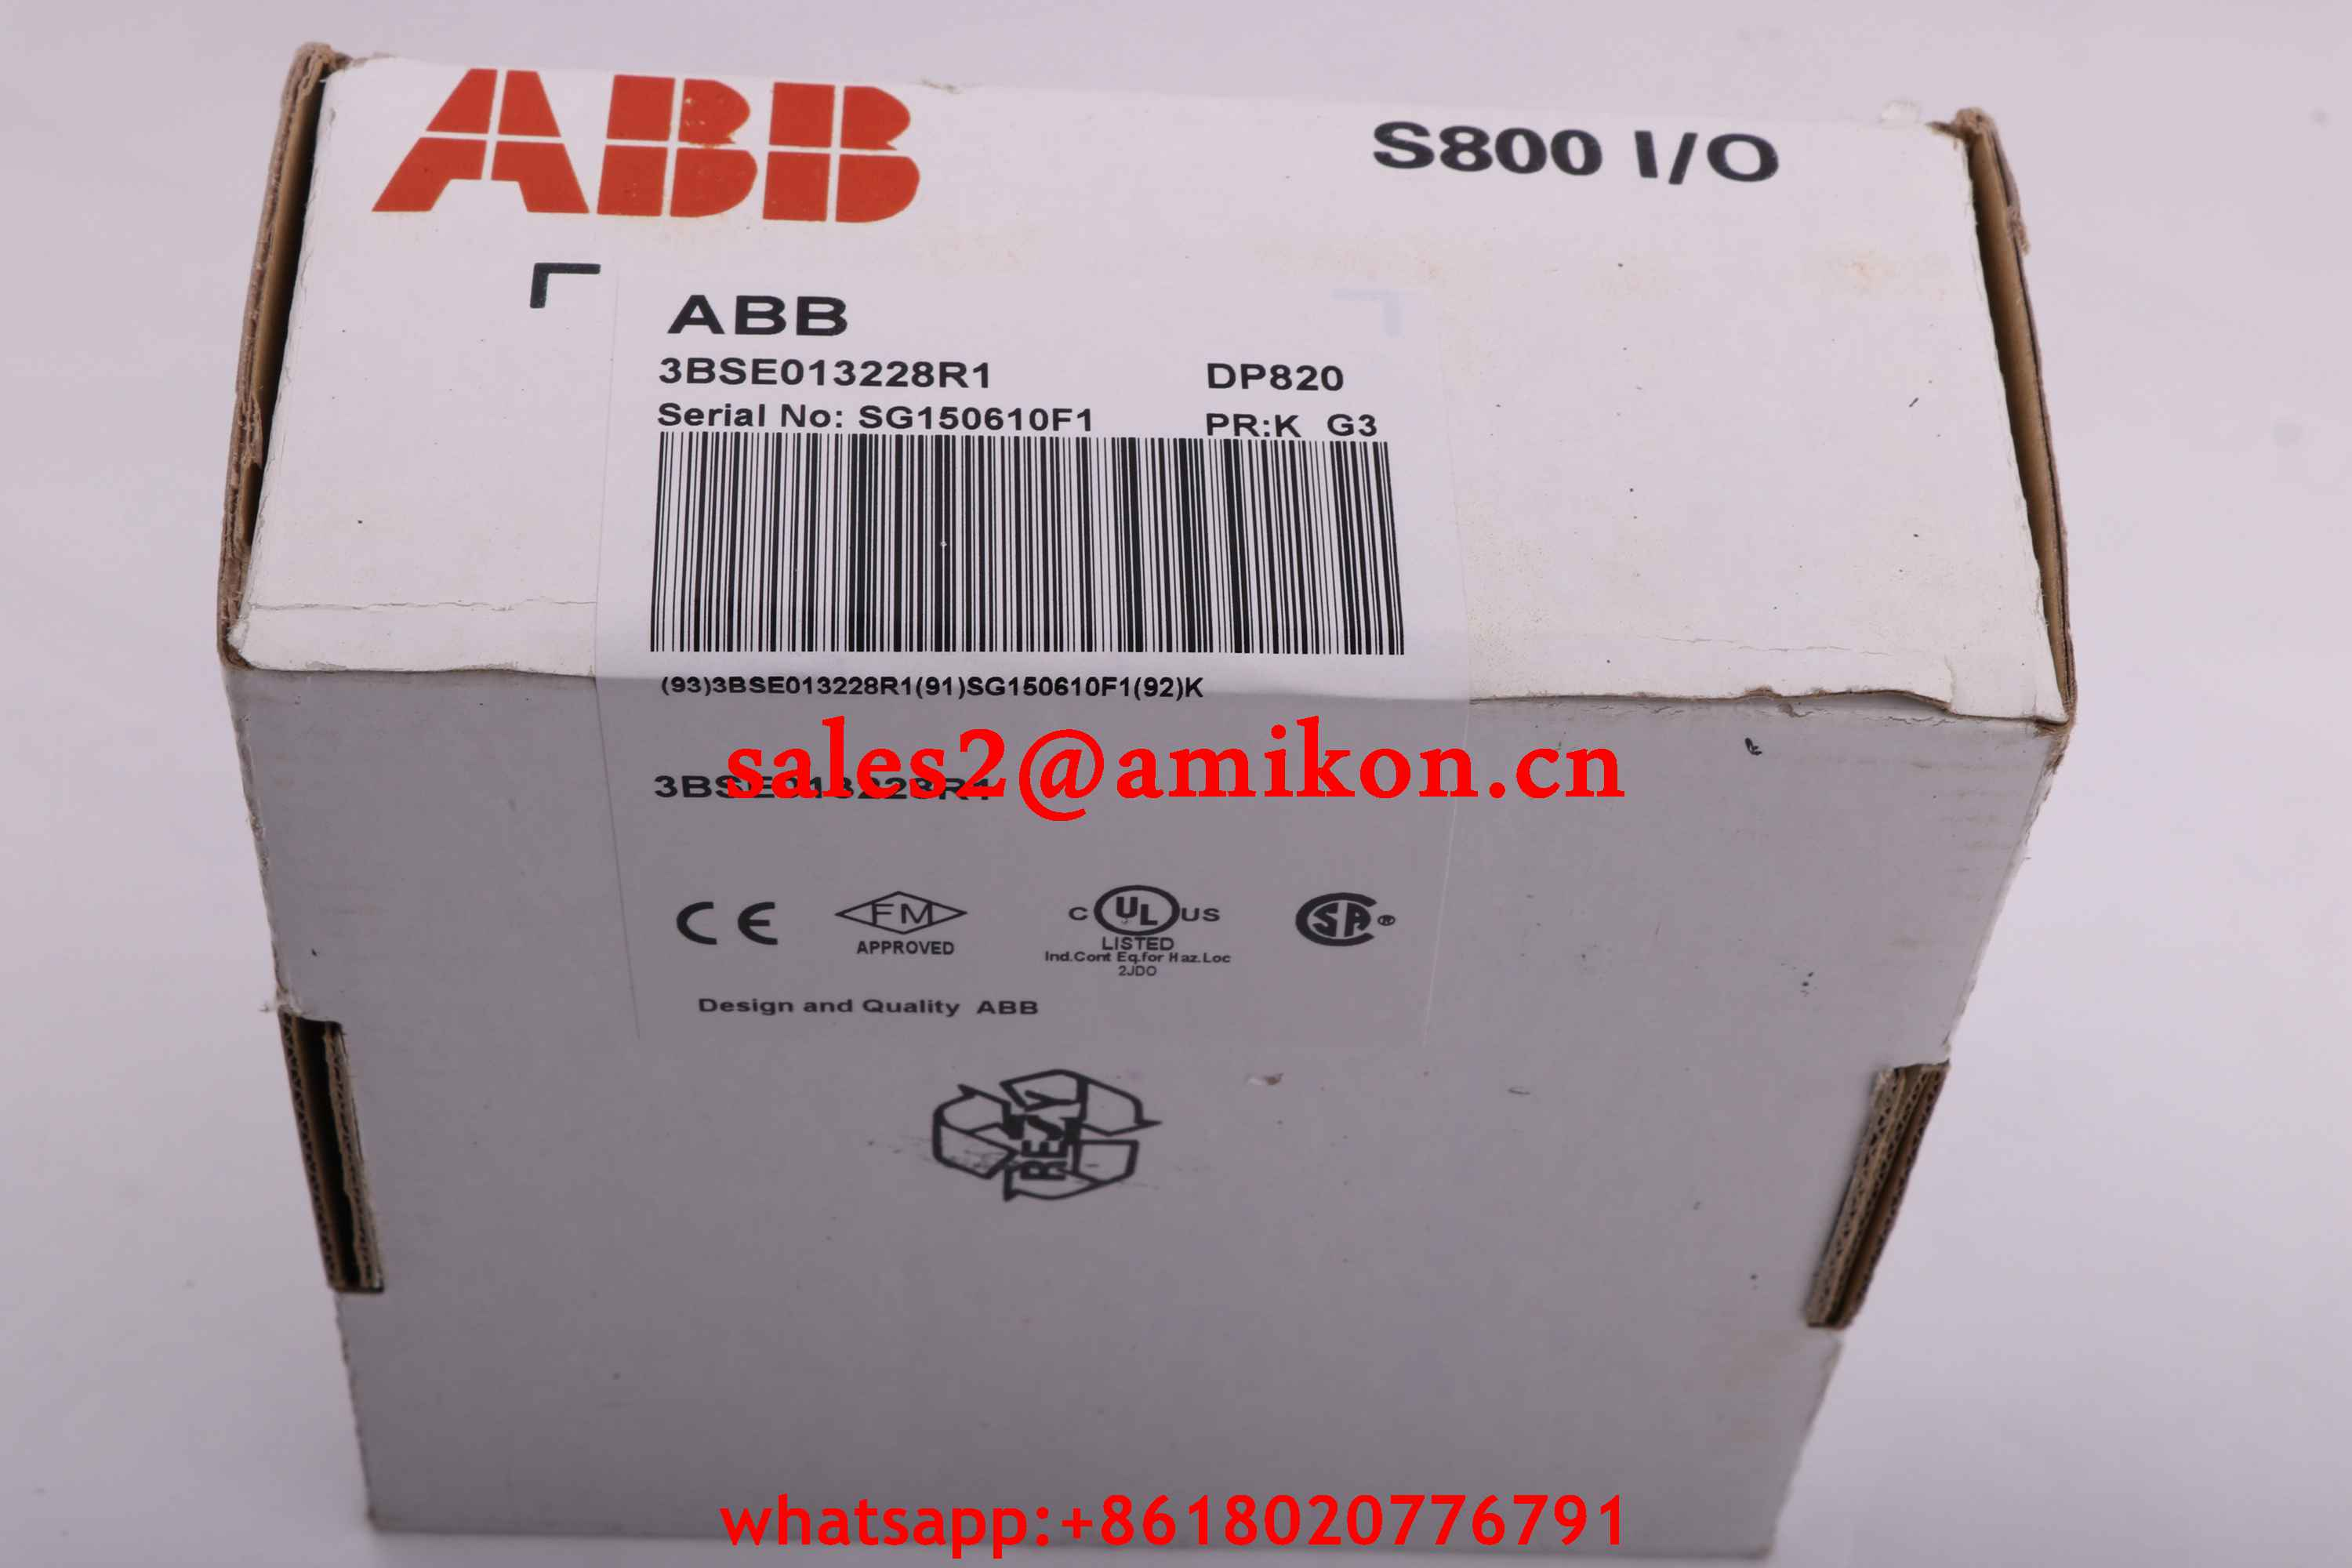 PAB02 ABB | Robot spare parts | PLC DCS Parts T/T 100% New In stock